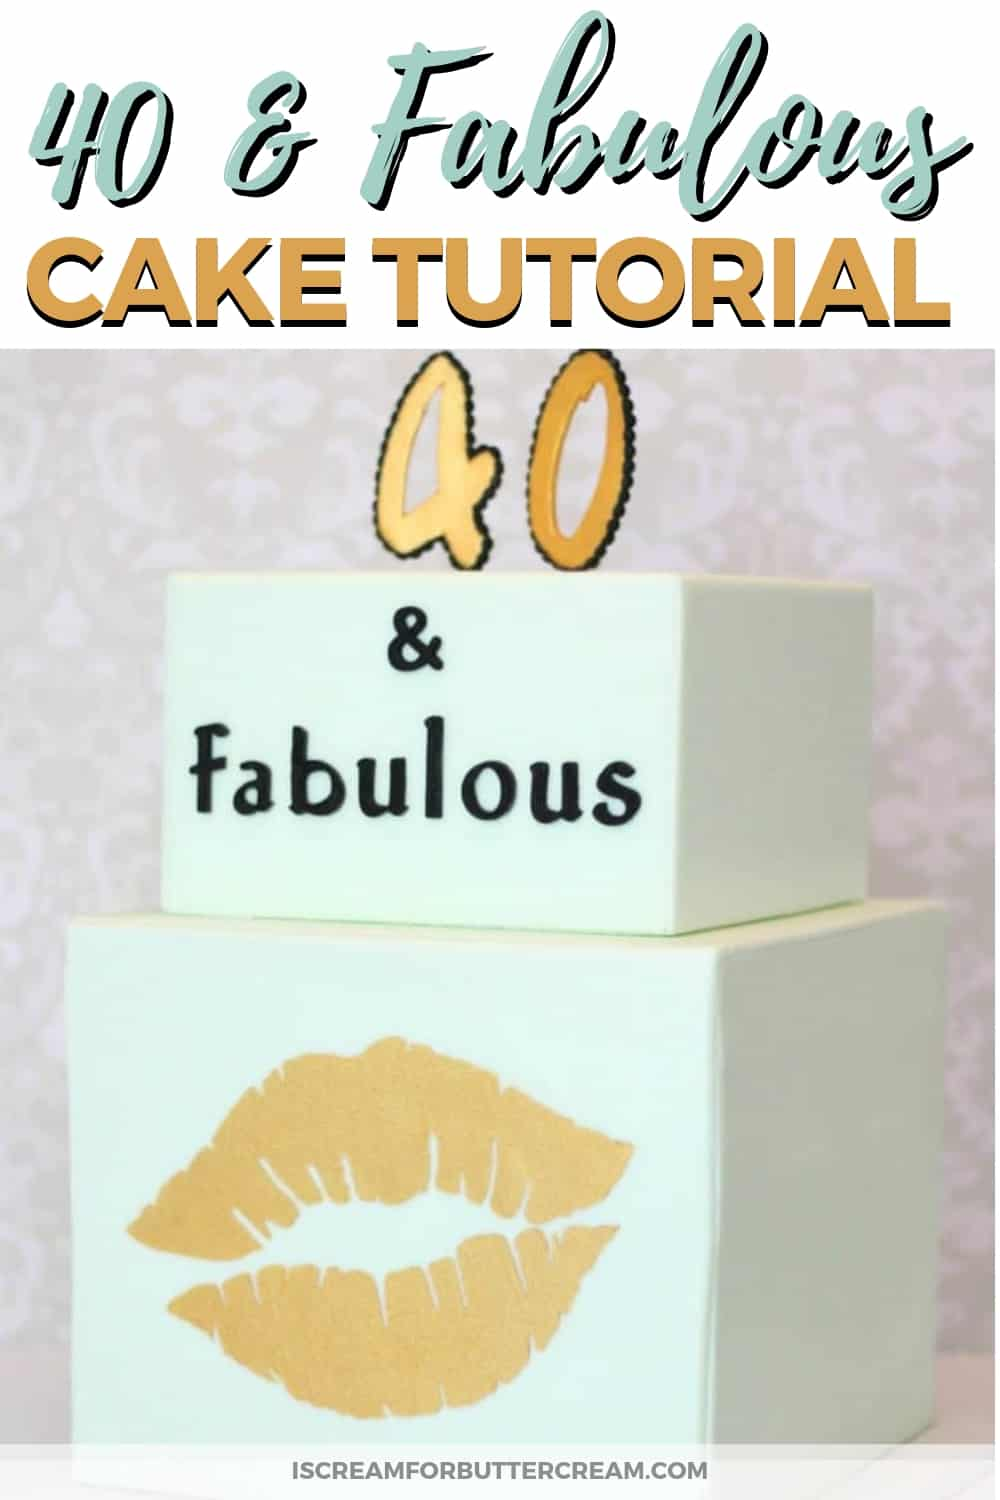 40 and Fabulous Cake Tutorial Pinterest Graphic